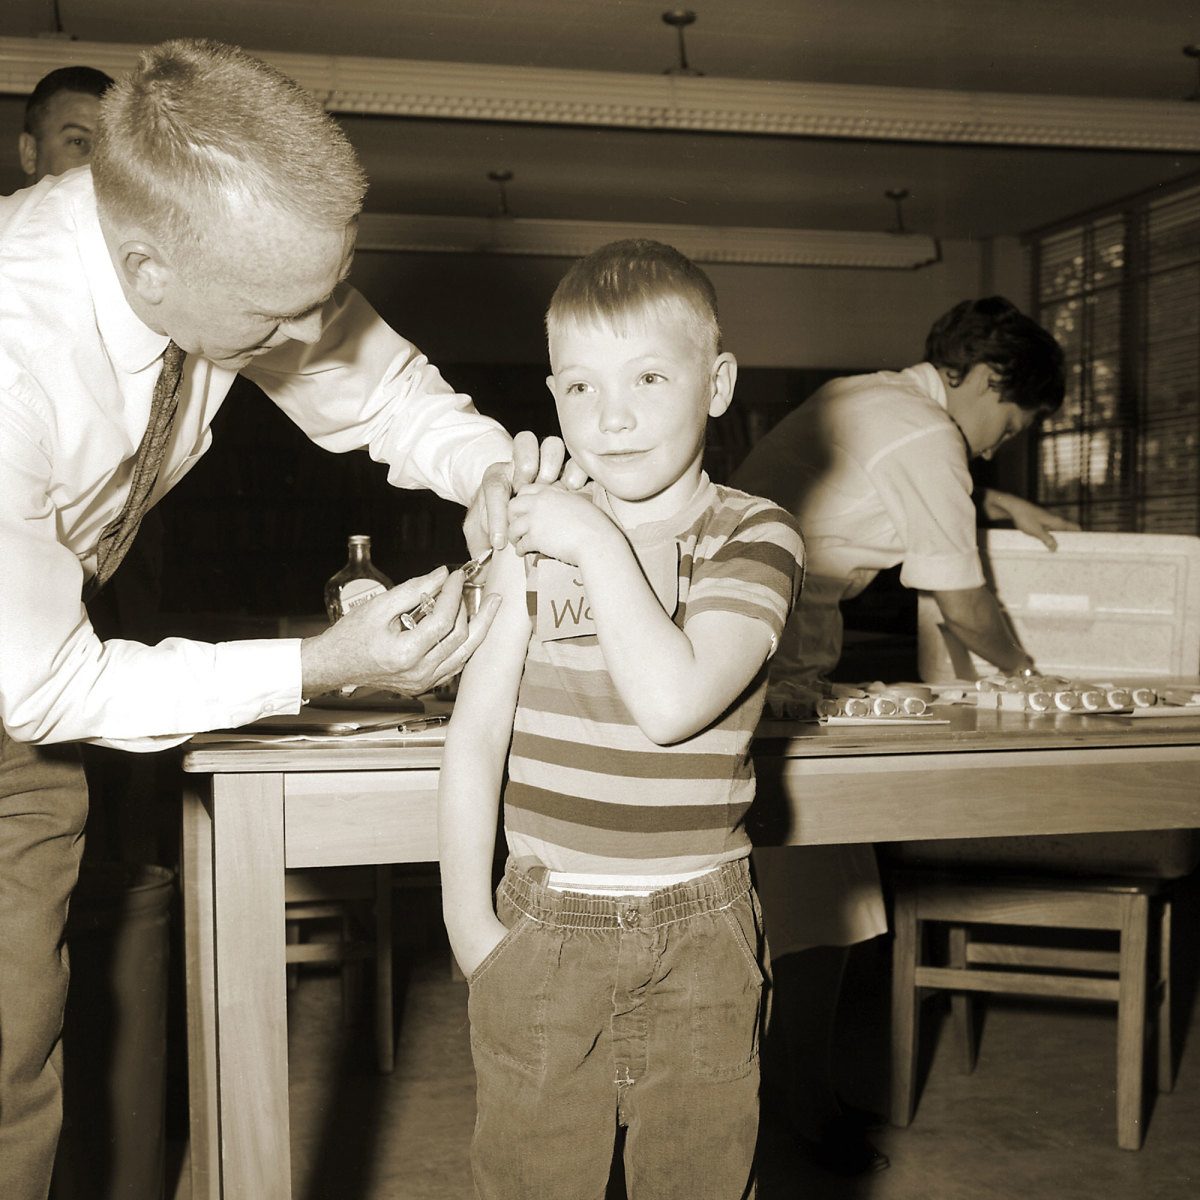 measles-vaccine-gettyimages-544419442